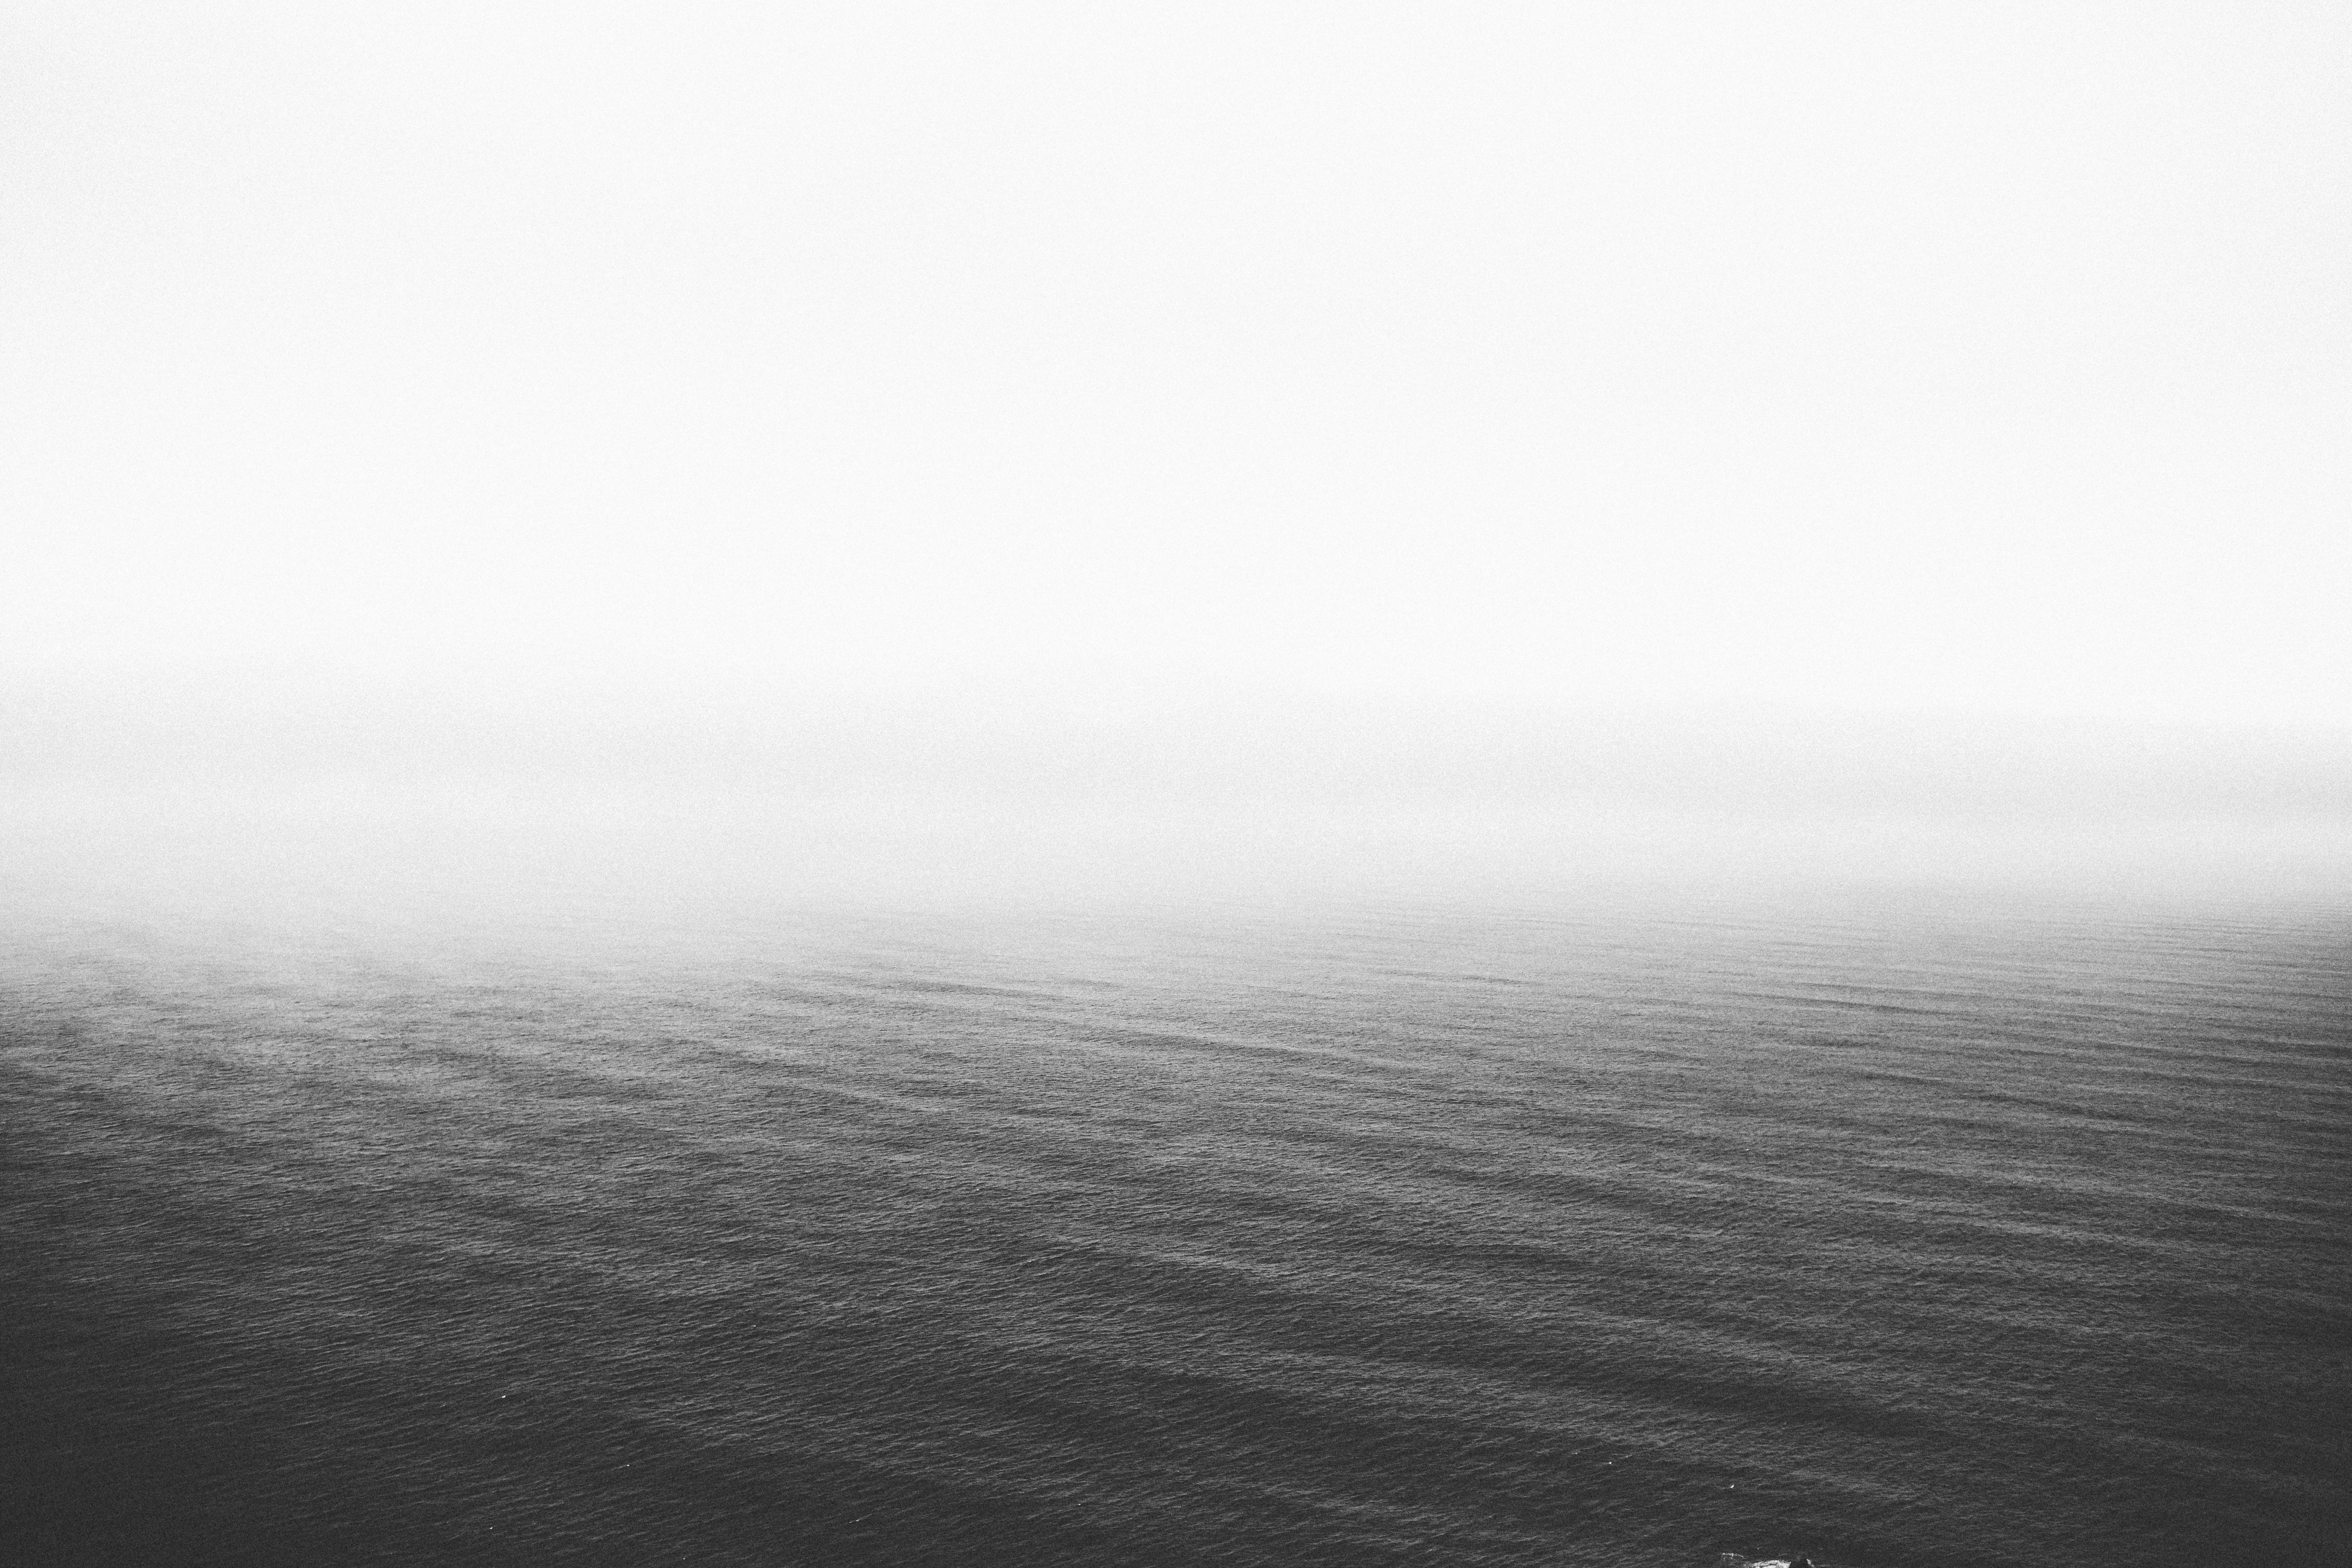 Infinity, sea, water, mist, black and white, calm, white